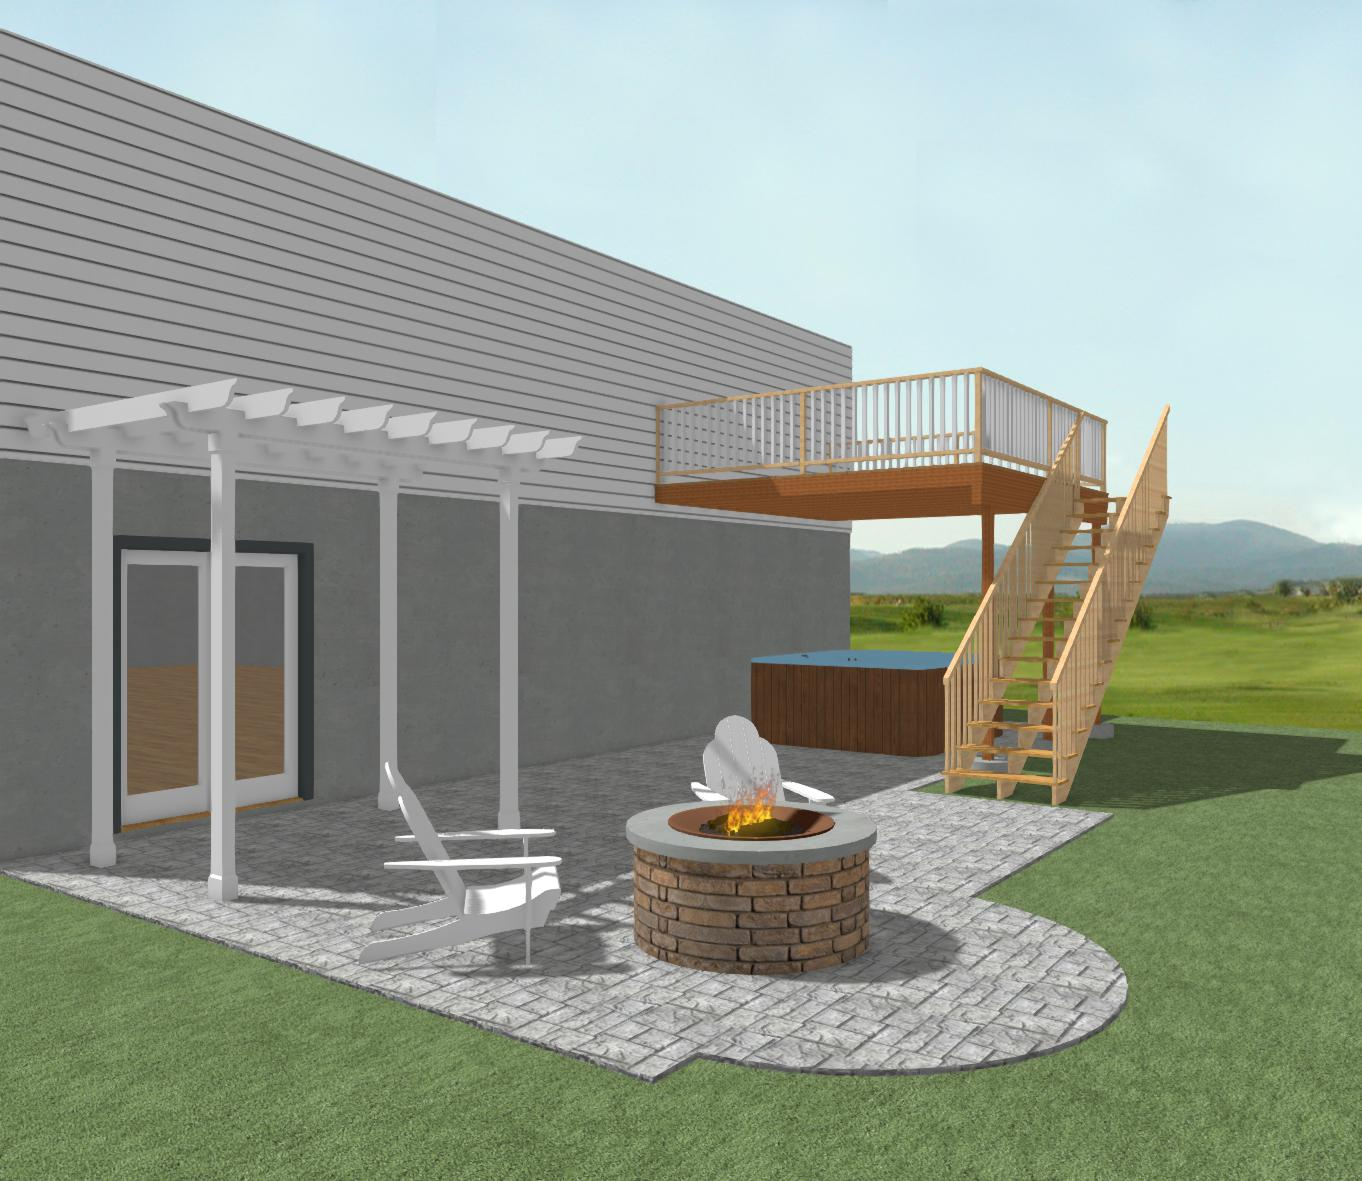 Stamped Patio Design Concept 3 With Pergola And Firepit